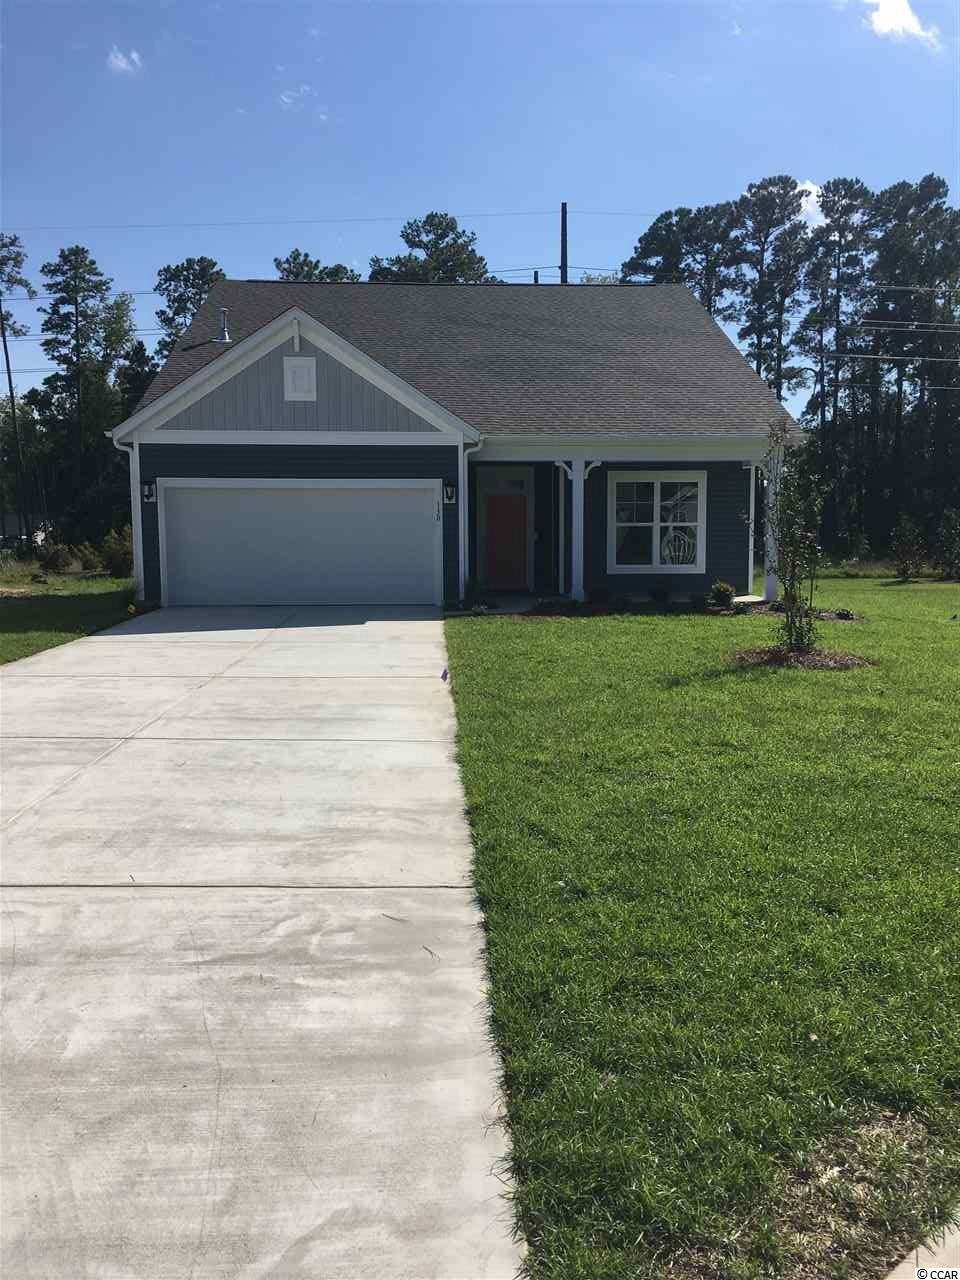 This Cordova home in Surfside Plantation is located off of HWY 707, close to public beach access in Surfside Beach. Enjoy close proximity to golf, shopping and dining in Myrtle Beach and Surfside Beach, the Myrtle Beach State Park and the Market Common District. Located on a corner lot, this 3-bedroom, 2-bathroom home features a secluded master bedroom and private dining. Welcome guests into your home at the extended foyer featuring the latest luxury flooring. The dining room is perfectly situated at the front of the home, next to the kitchen. The kitchen features spacious granite countertops, stainless steel Whirlpool® appliances, including refrigerator and gas range and is conveniently located near the breakfast area. The great room features luxury floors and large windows. The master bedroom boasts private views to the backyard. The master bathroom features a walk-in shower, tile floors, double raised vanities and a large walk-in closet. Screened porch in the backyard, fully sod yard, and attic storage located in the garage with pull down stairs. Laundry package and blinds included. Every home is built to ENERGY STAR® standards, is tested, and receives an individual ENERGY STAR certification saving you money every month on your utility bills. Home is under construction, completion in September 2019. Photos of a previously built home.